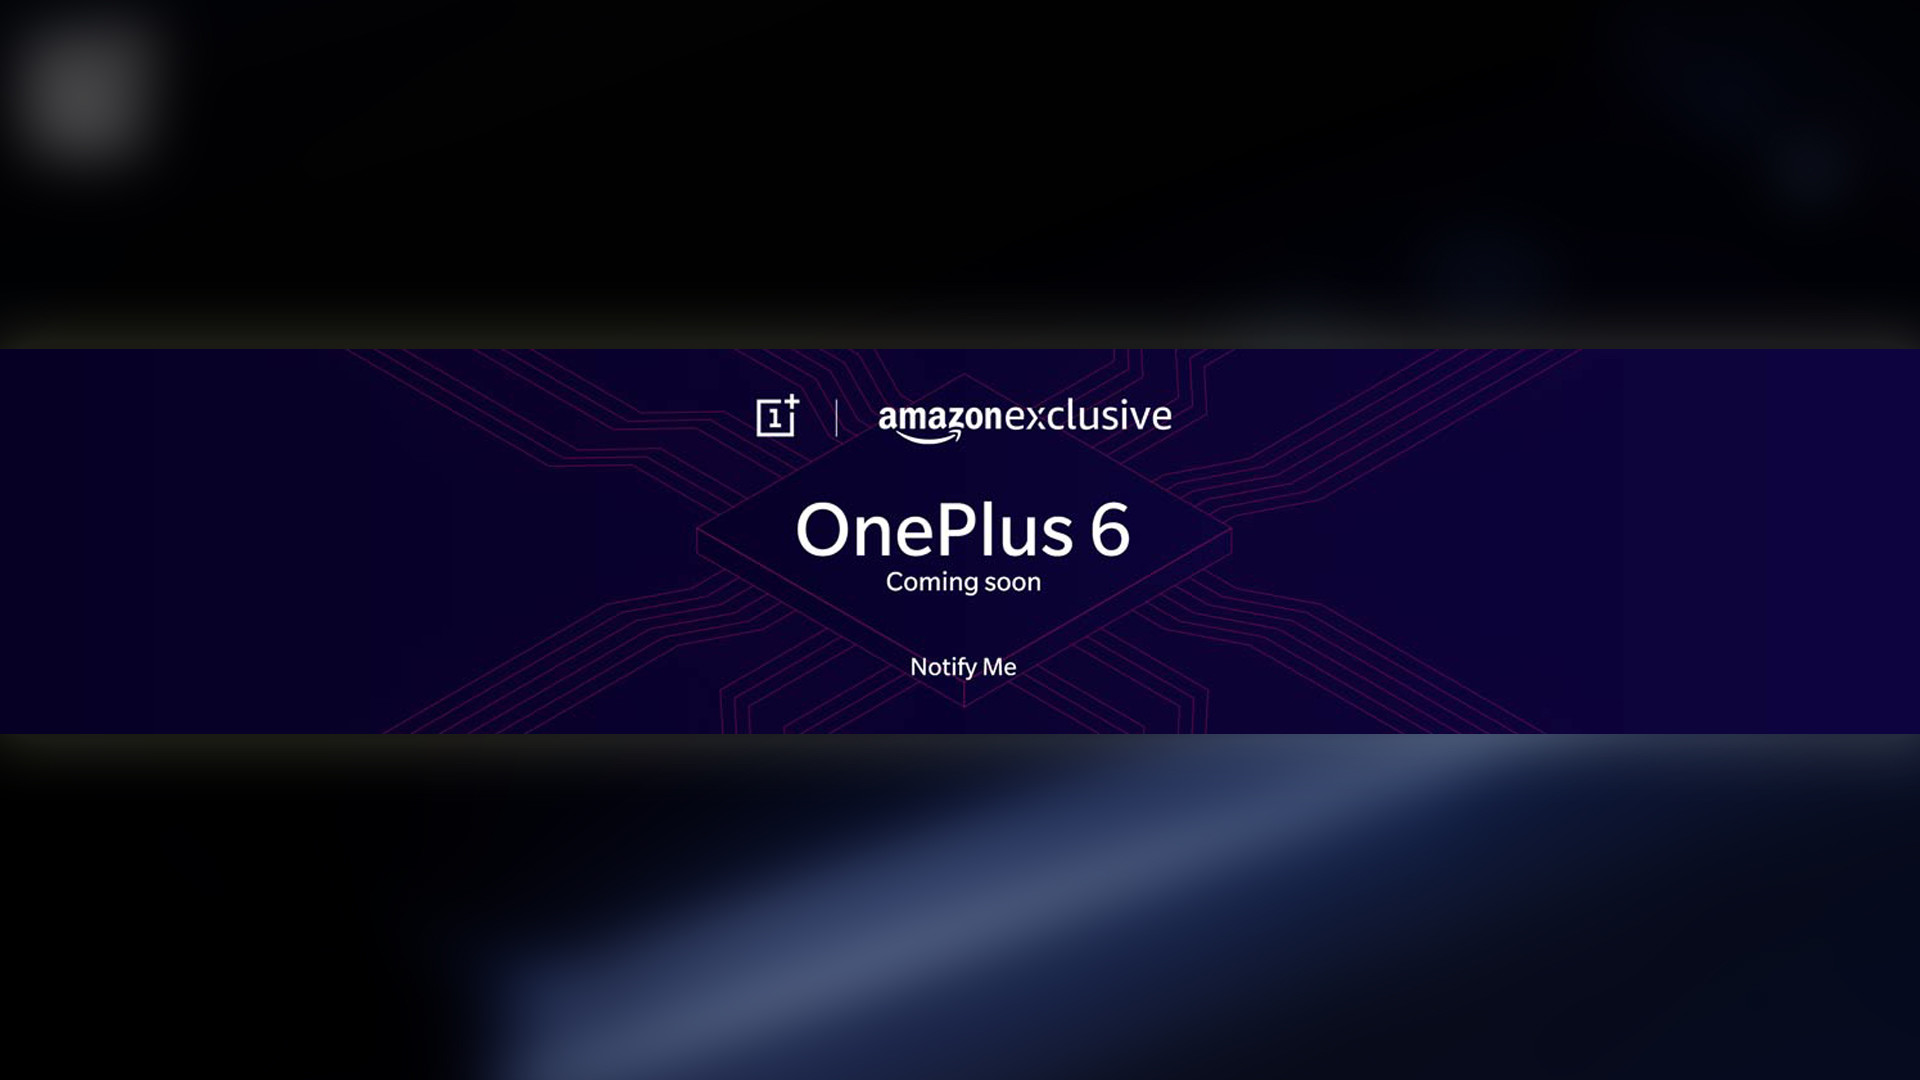 OnePlus 6 to launch in India soon, Amazon opens 'notify me' registrations